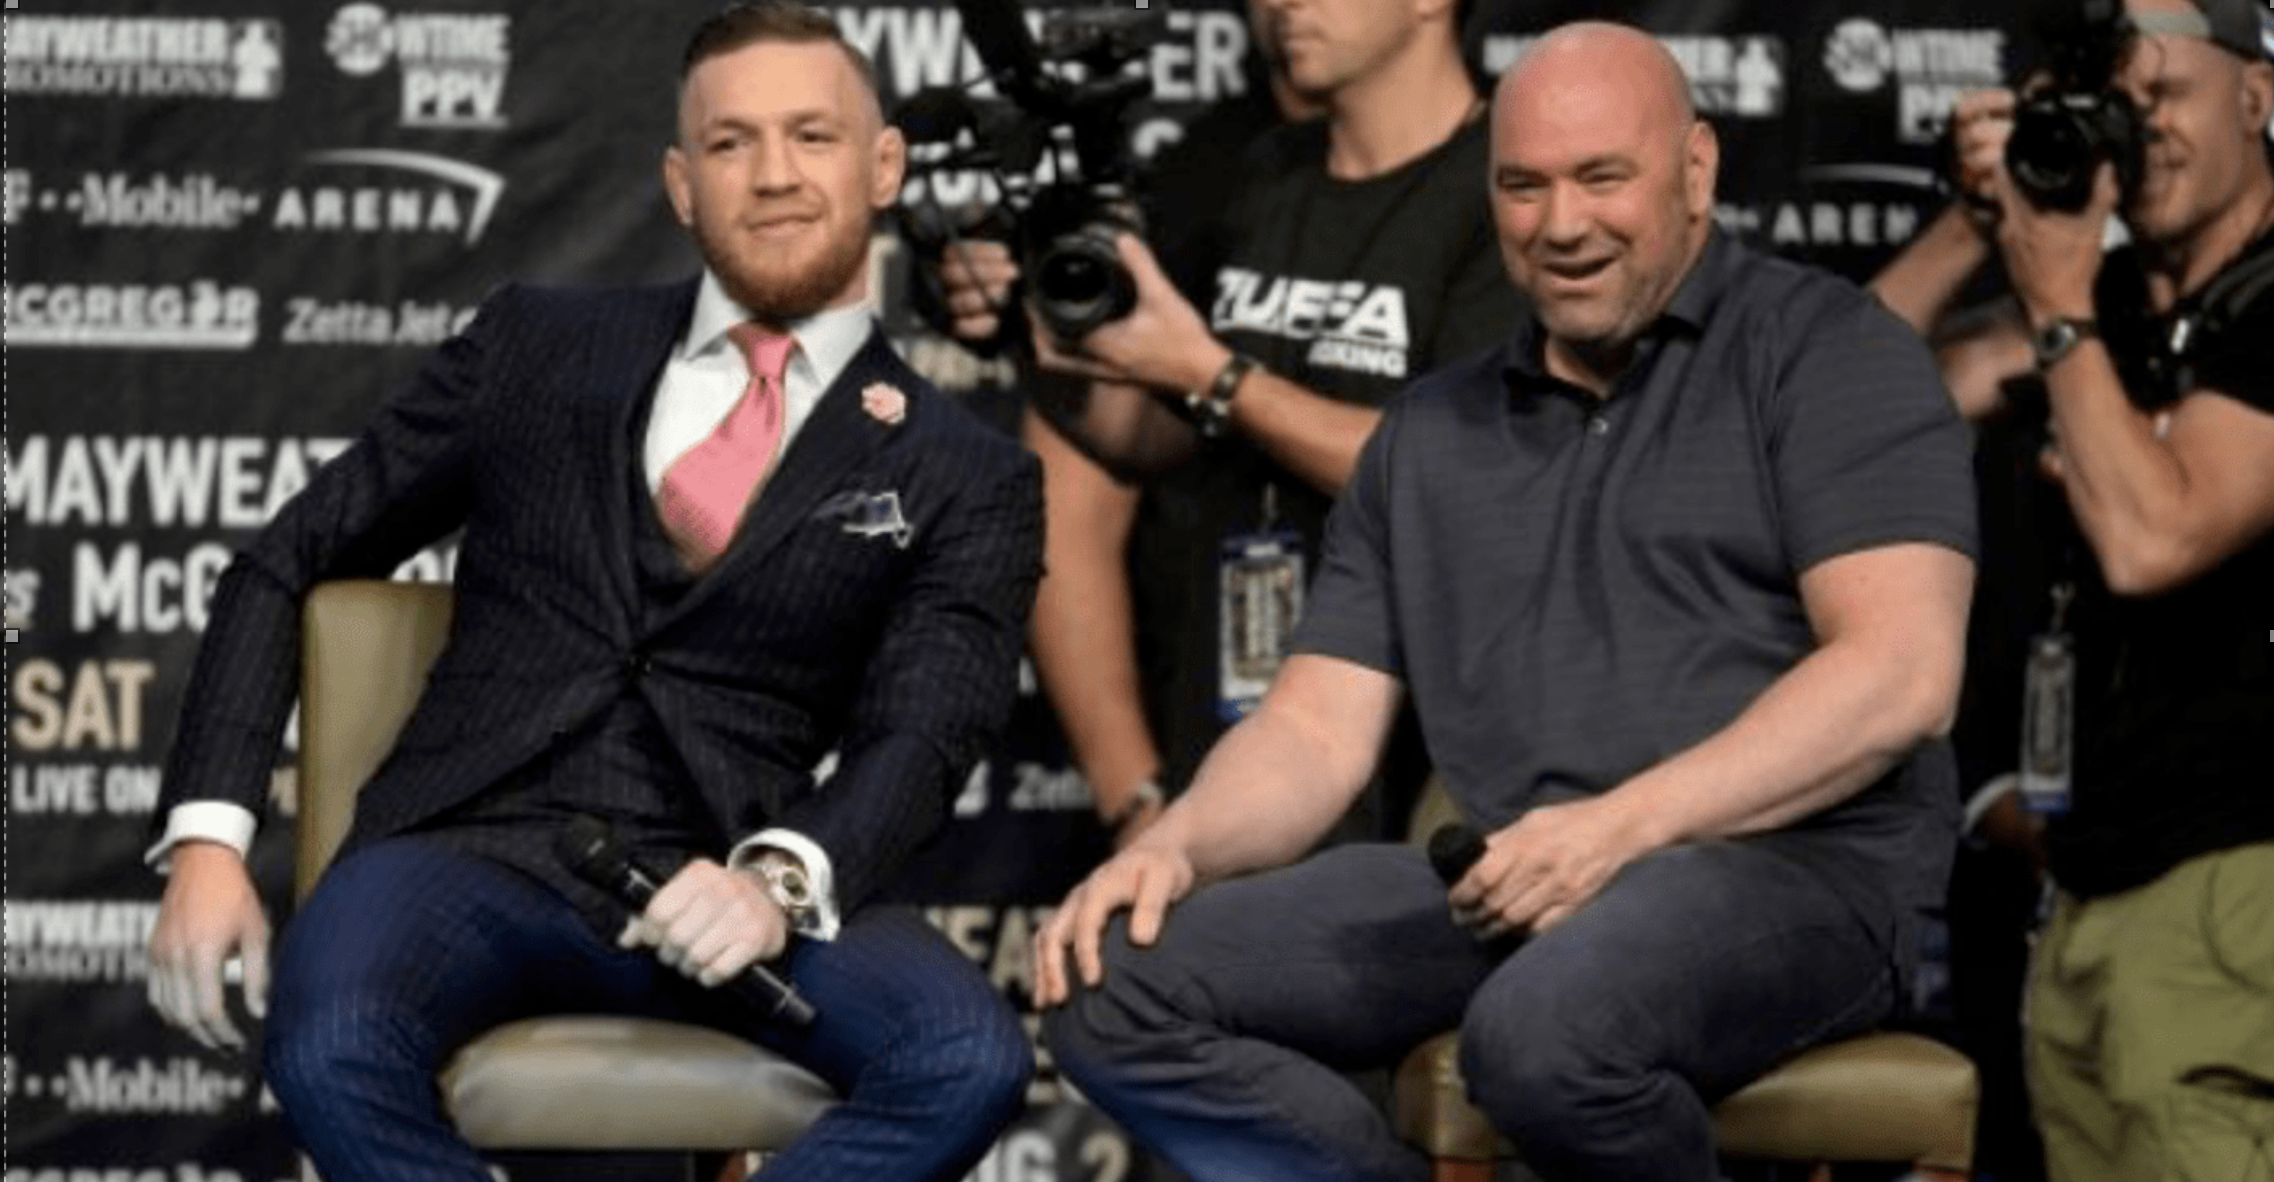 Dana Gives Update On McGregor, Cejudo, Fight Island & Zuffa Boxing